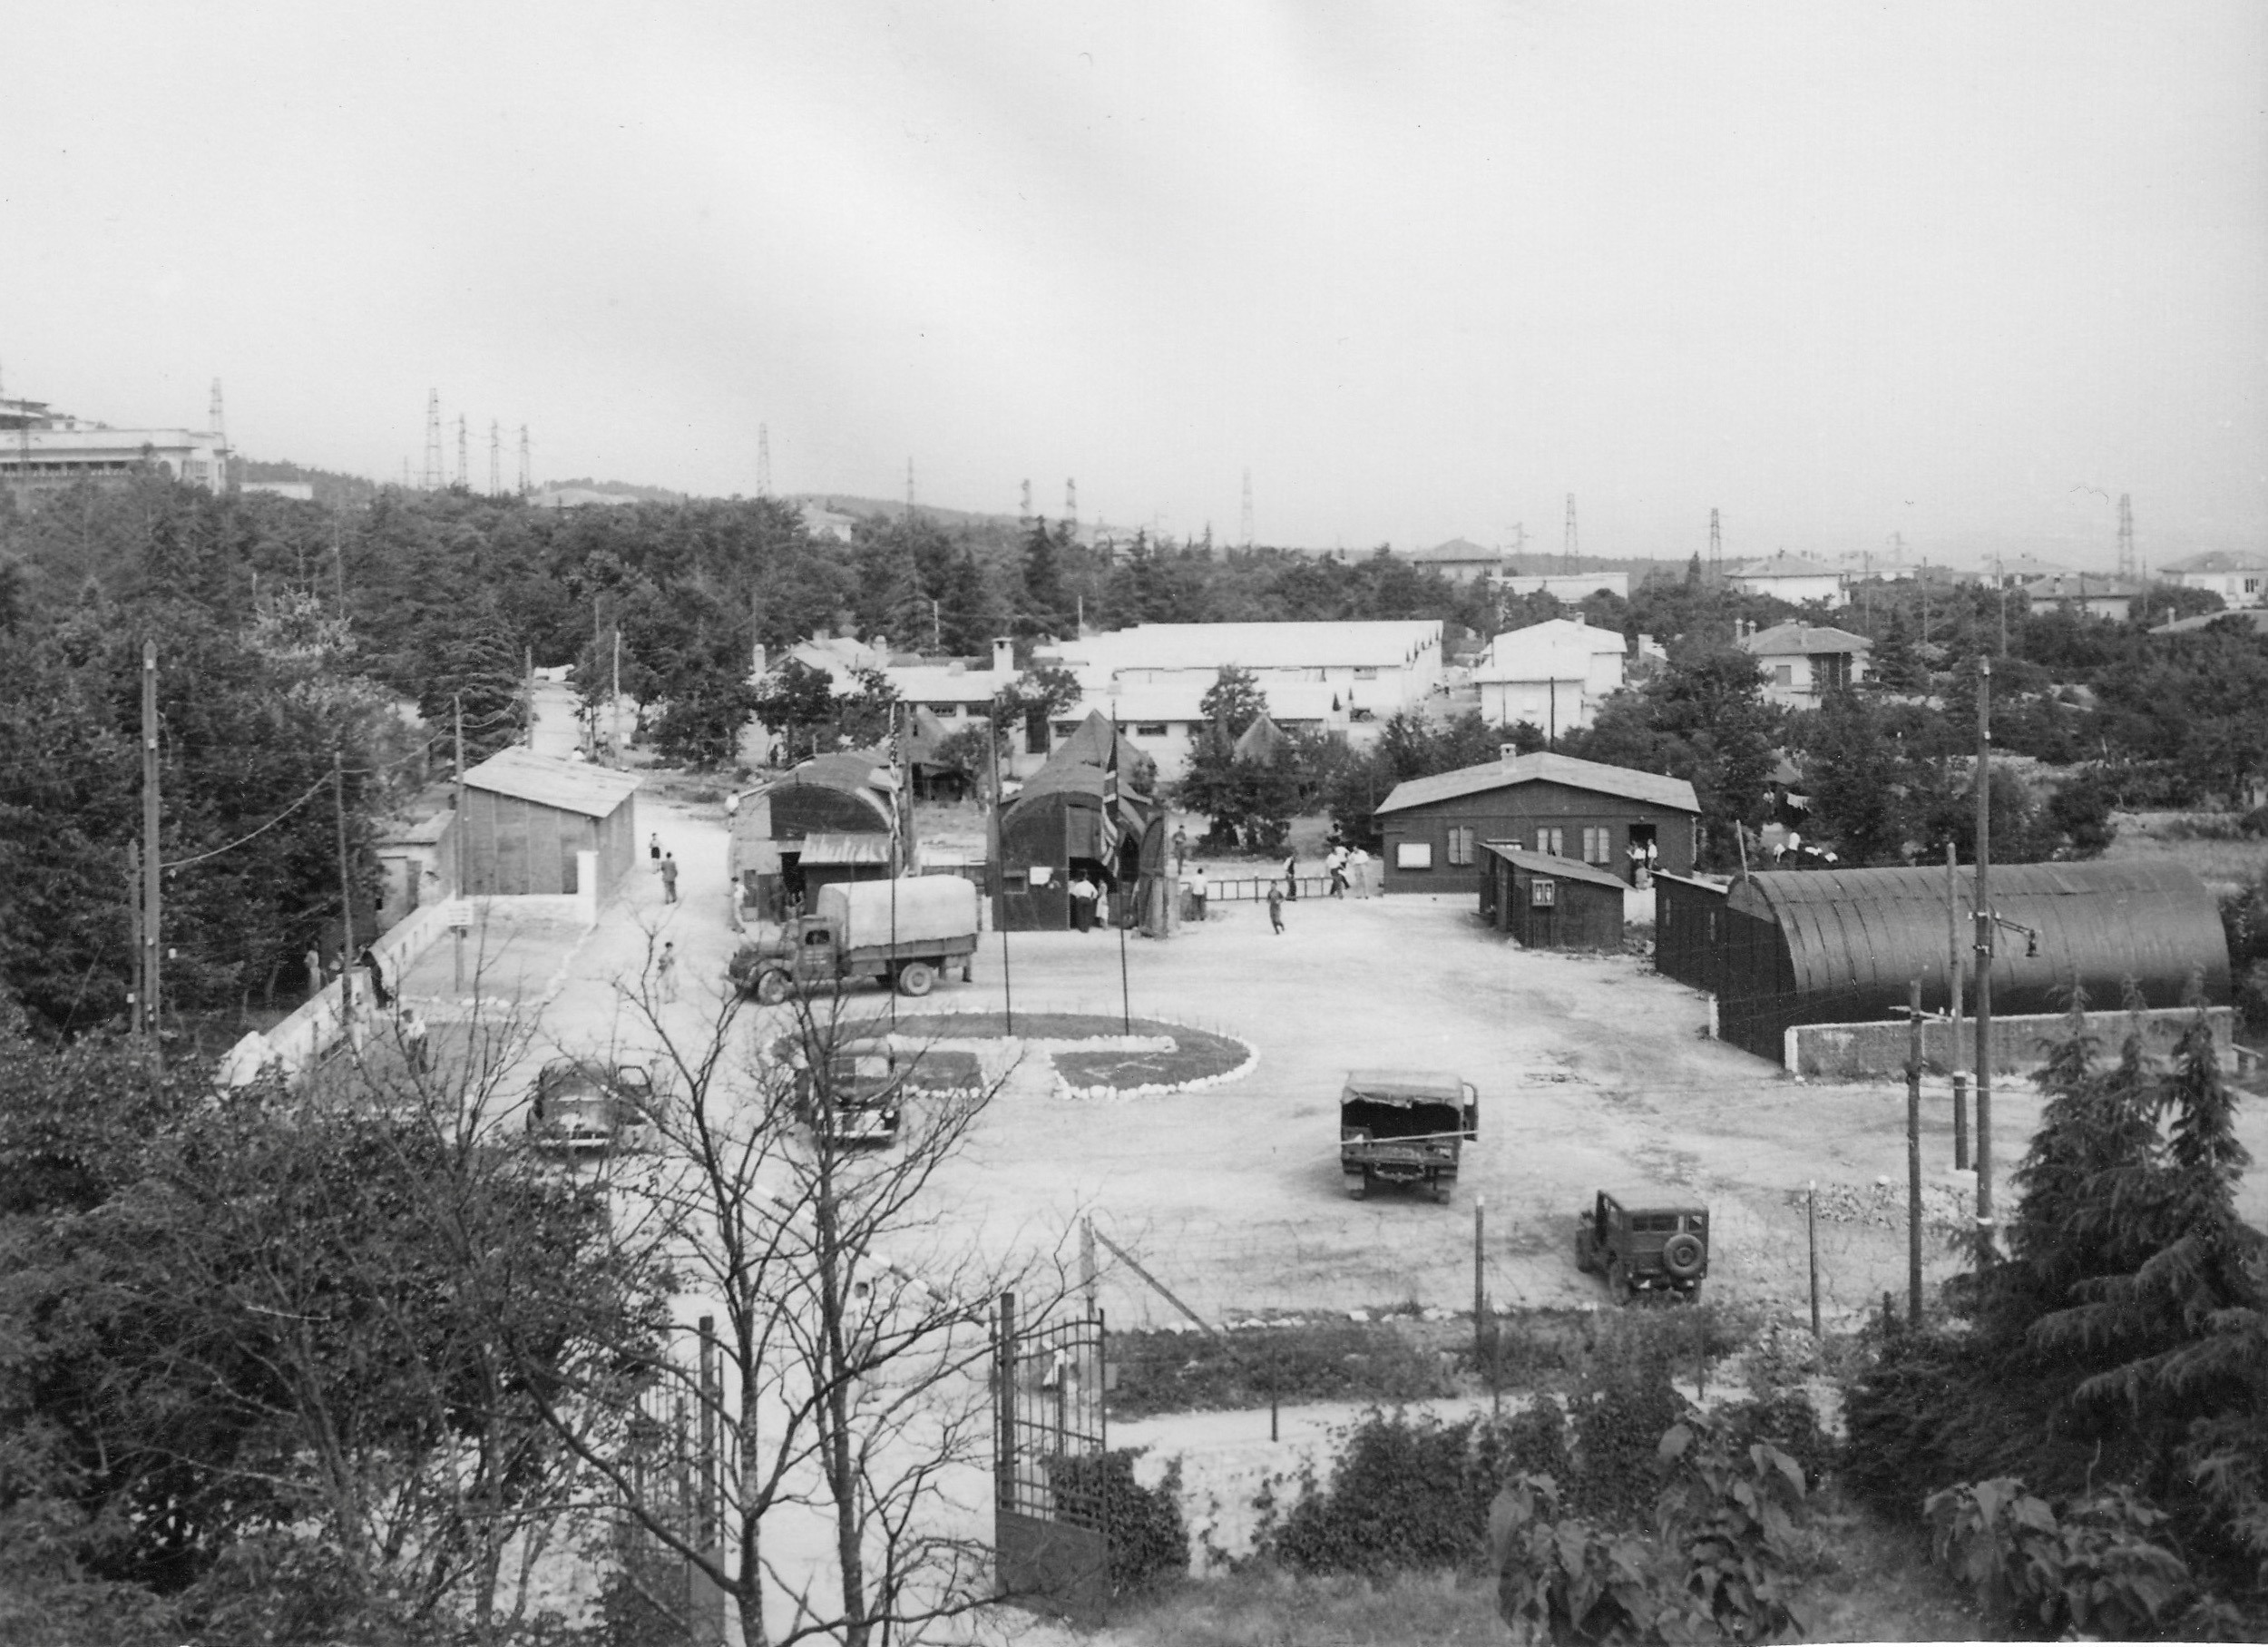 Opincina camp, view from office window 1950-51